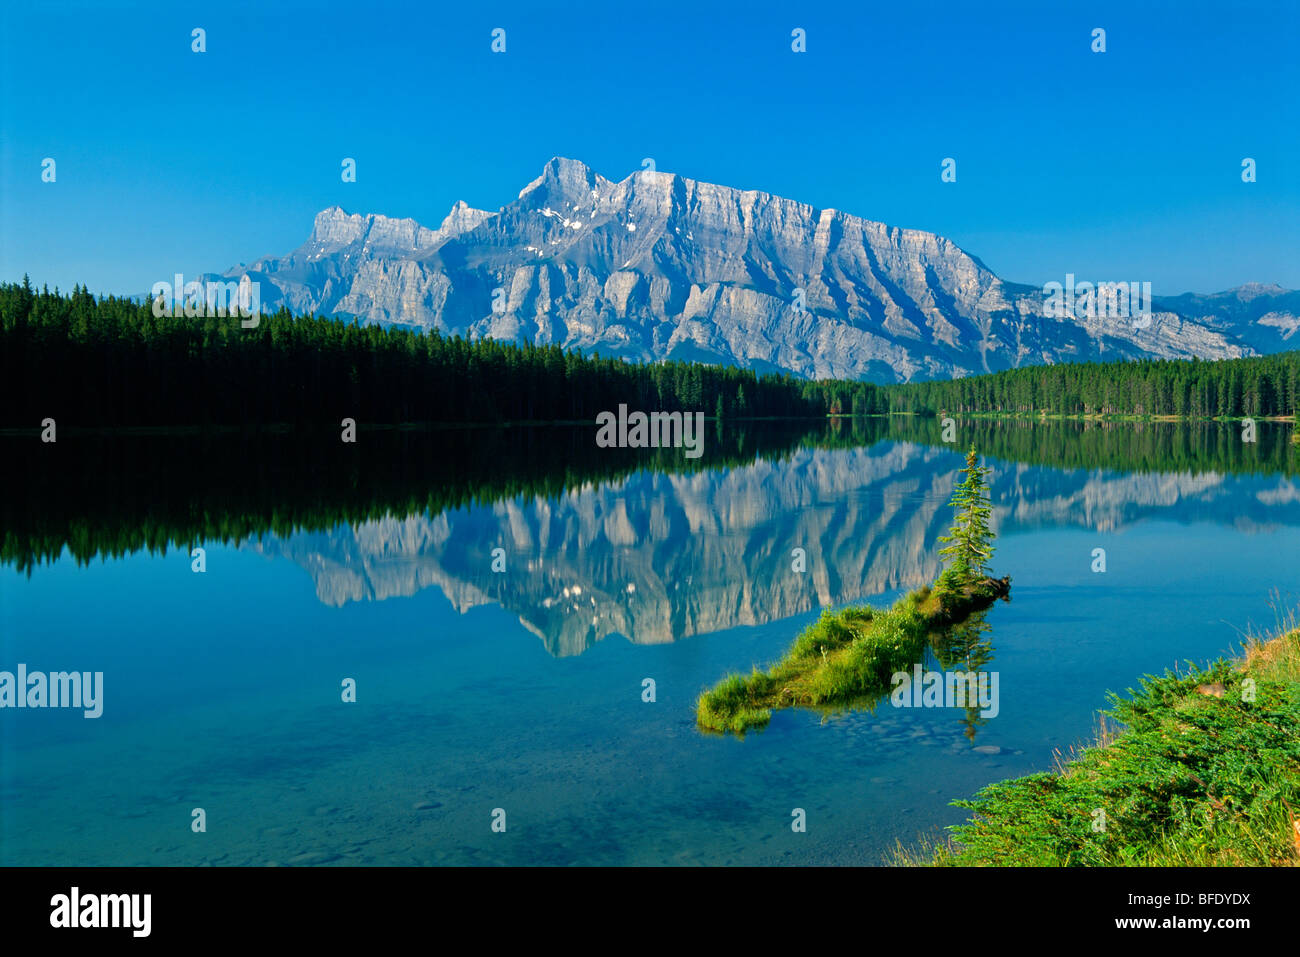 Mountain reflection in Two Jack Lake and Mount Rundle, Banff National Park, Alberta, Canada Stock Photo